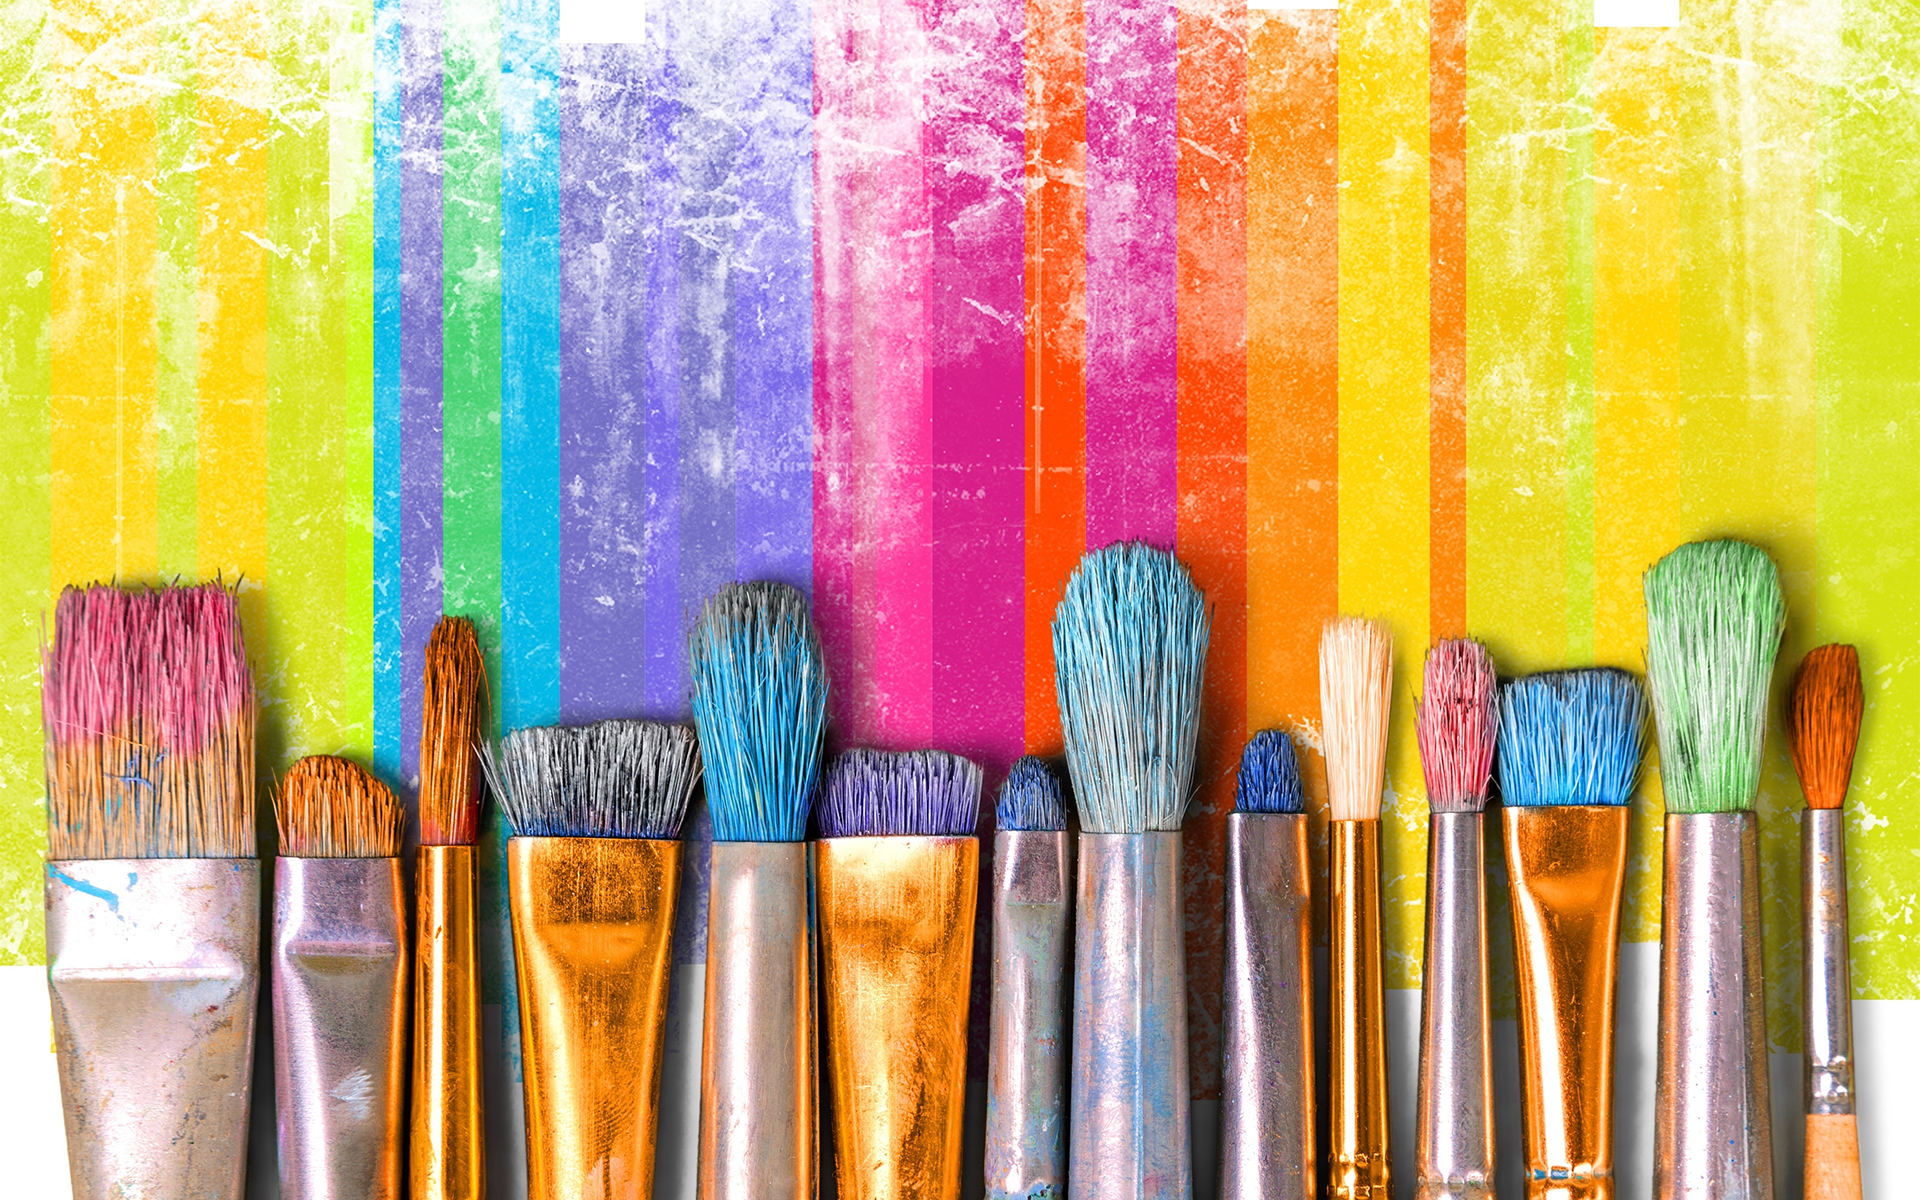 How do you tap into creativity? - Paintbrush art paint creativity craft backgrounds exhibition